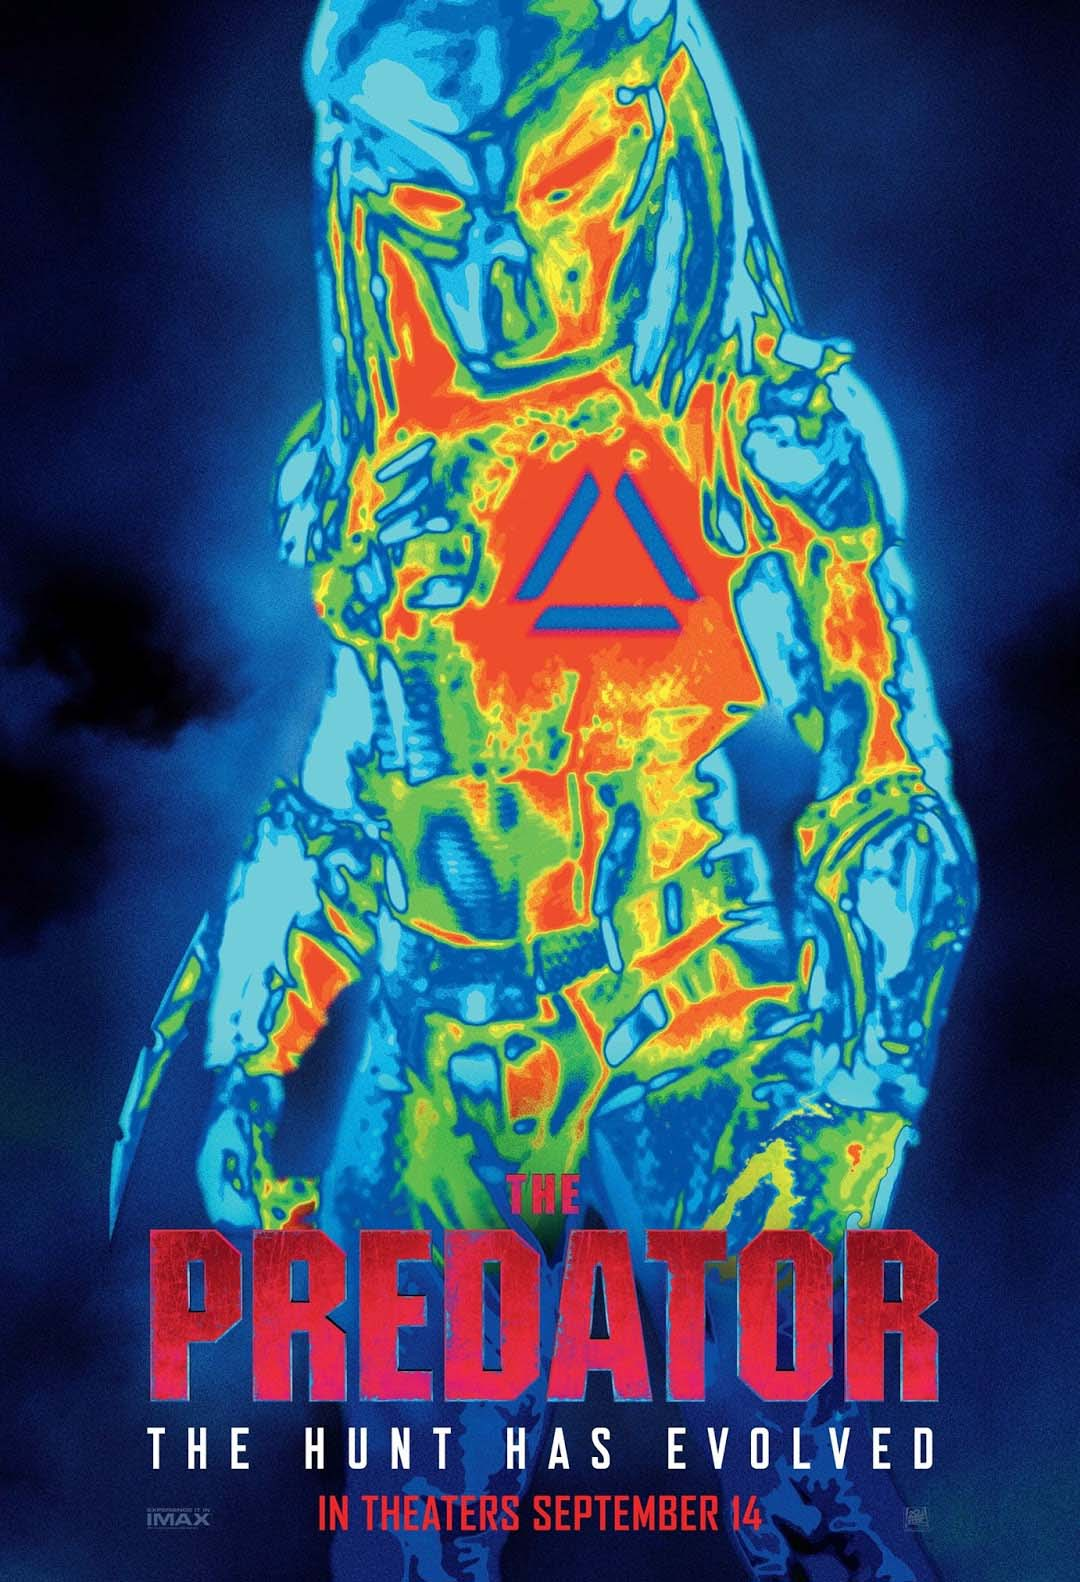 The Predator (2018) Full Movie Free Online